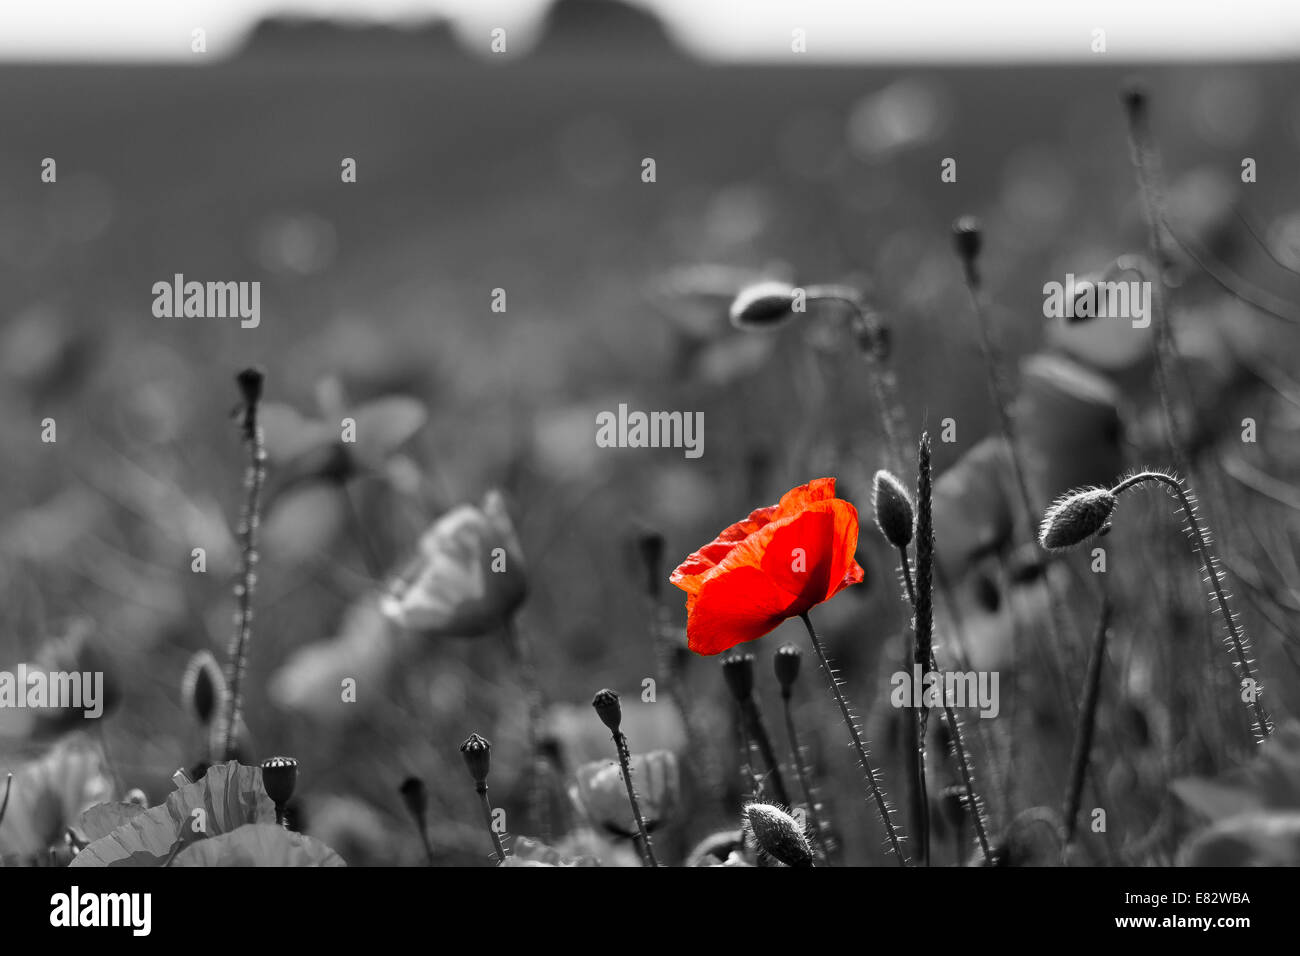 A poppy field with a single red poppy in colour on a black and white background